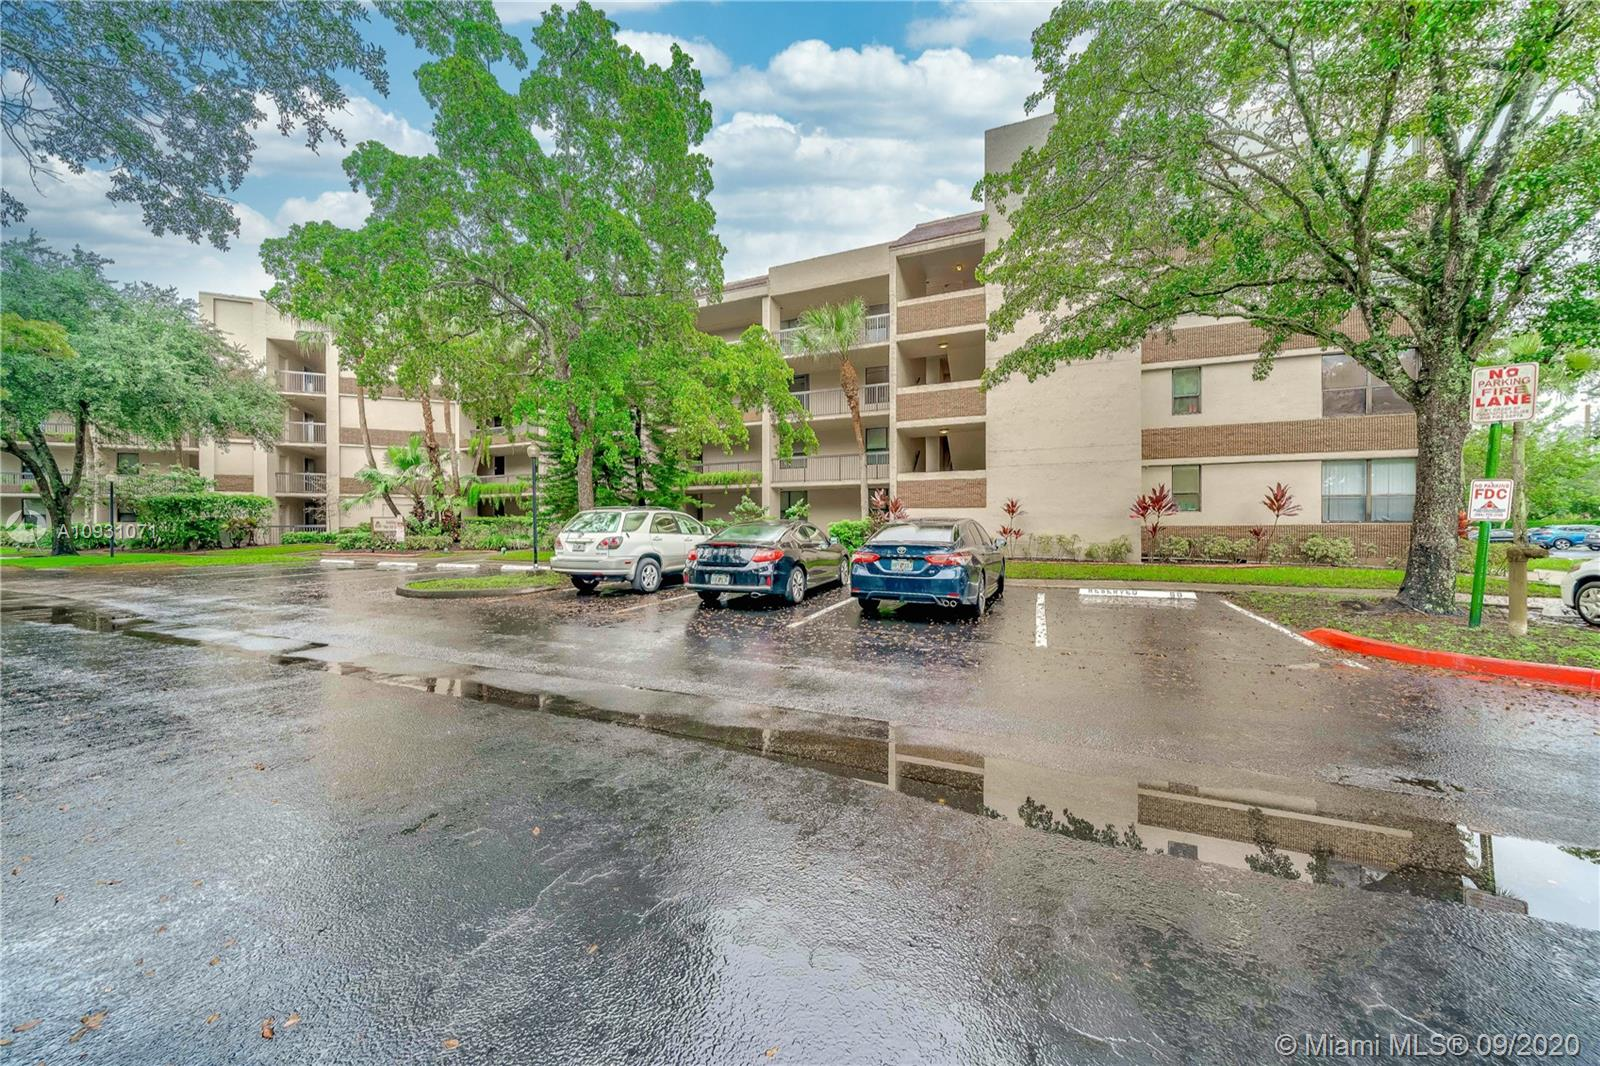 7500 NW 1st Ct # 306, Plantation, Florida 33317, 3 Bedrooms Bedrooms, ,2 BathroomsBathrooms,Residential,For Sale,7500 NW 1st Ct # 306,A10931071